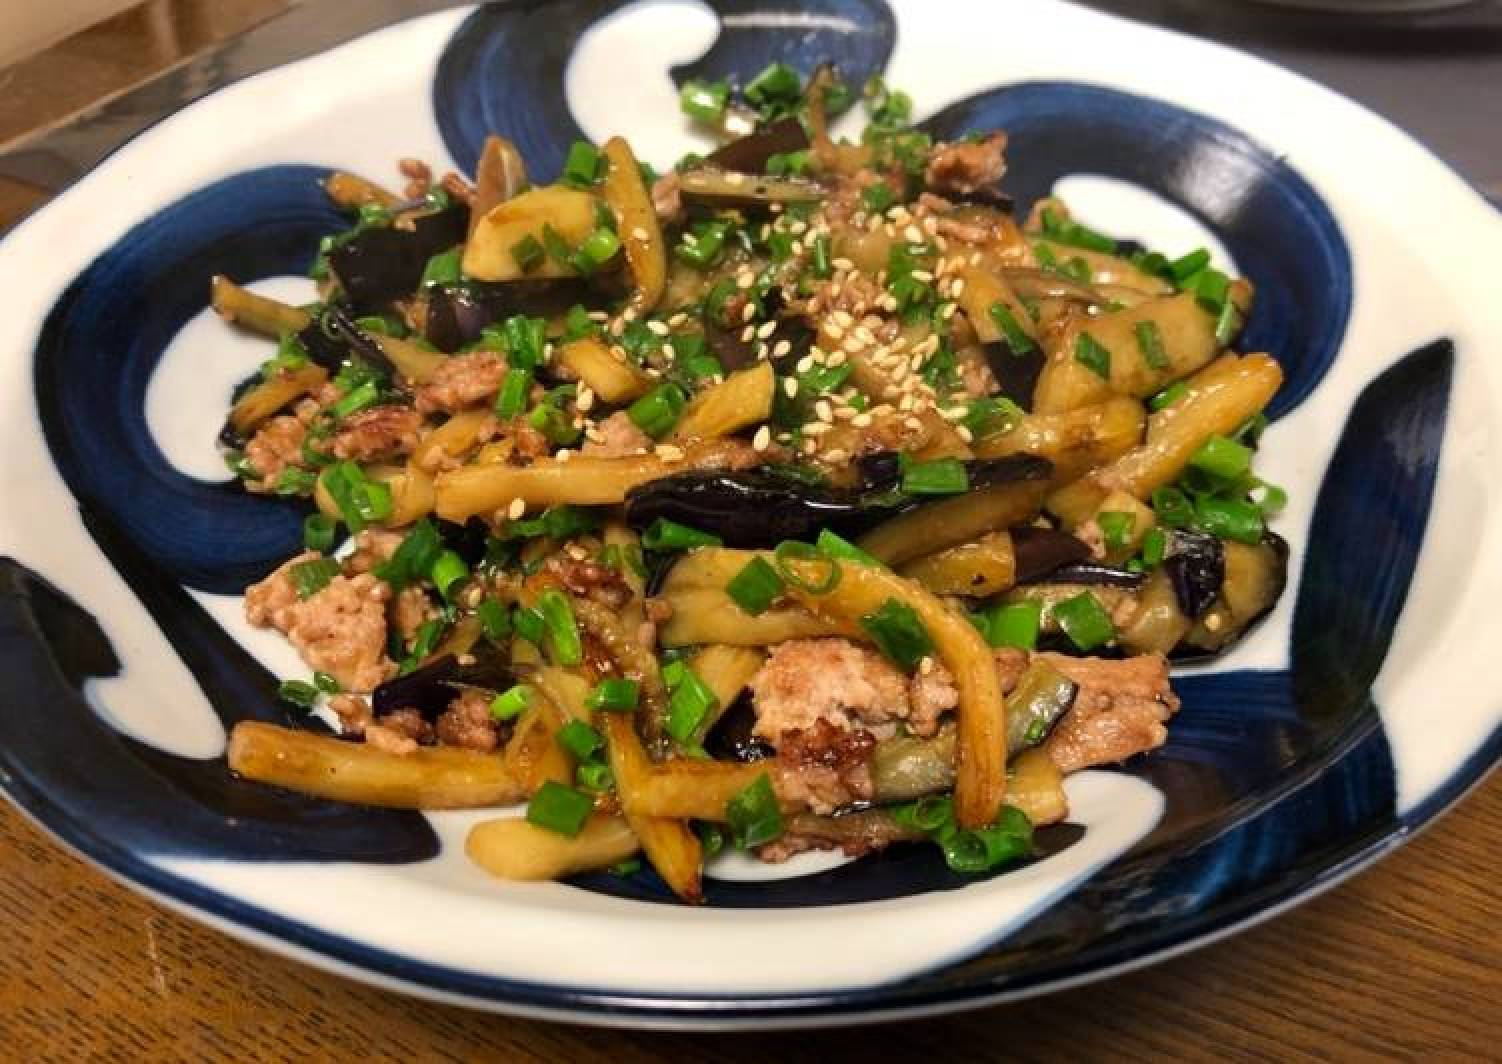 Eggplant Oyster sauce Fry